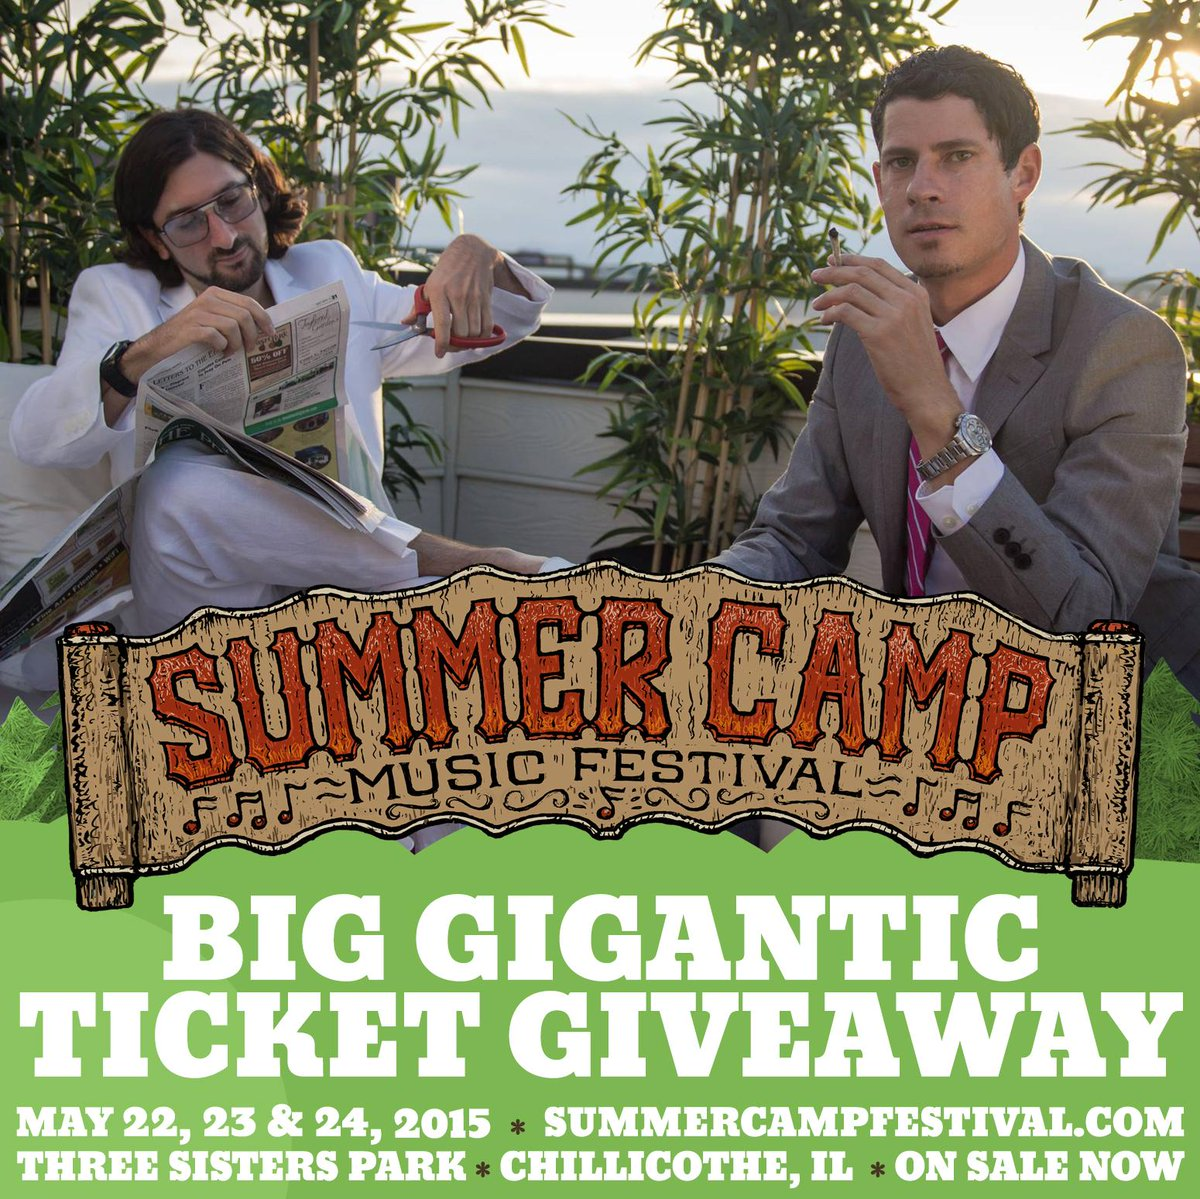 #SCamp15 GIVEAWAY!!!!! - follow @SummerCampFest + RT to enter to win 2 tickets! Info: http://t.co/346vqeYmn4 http://t.co/k1SsfC06Zn